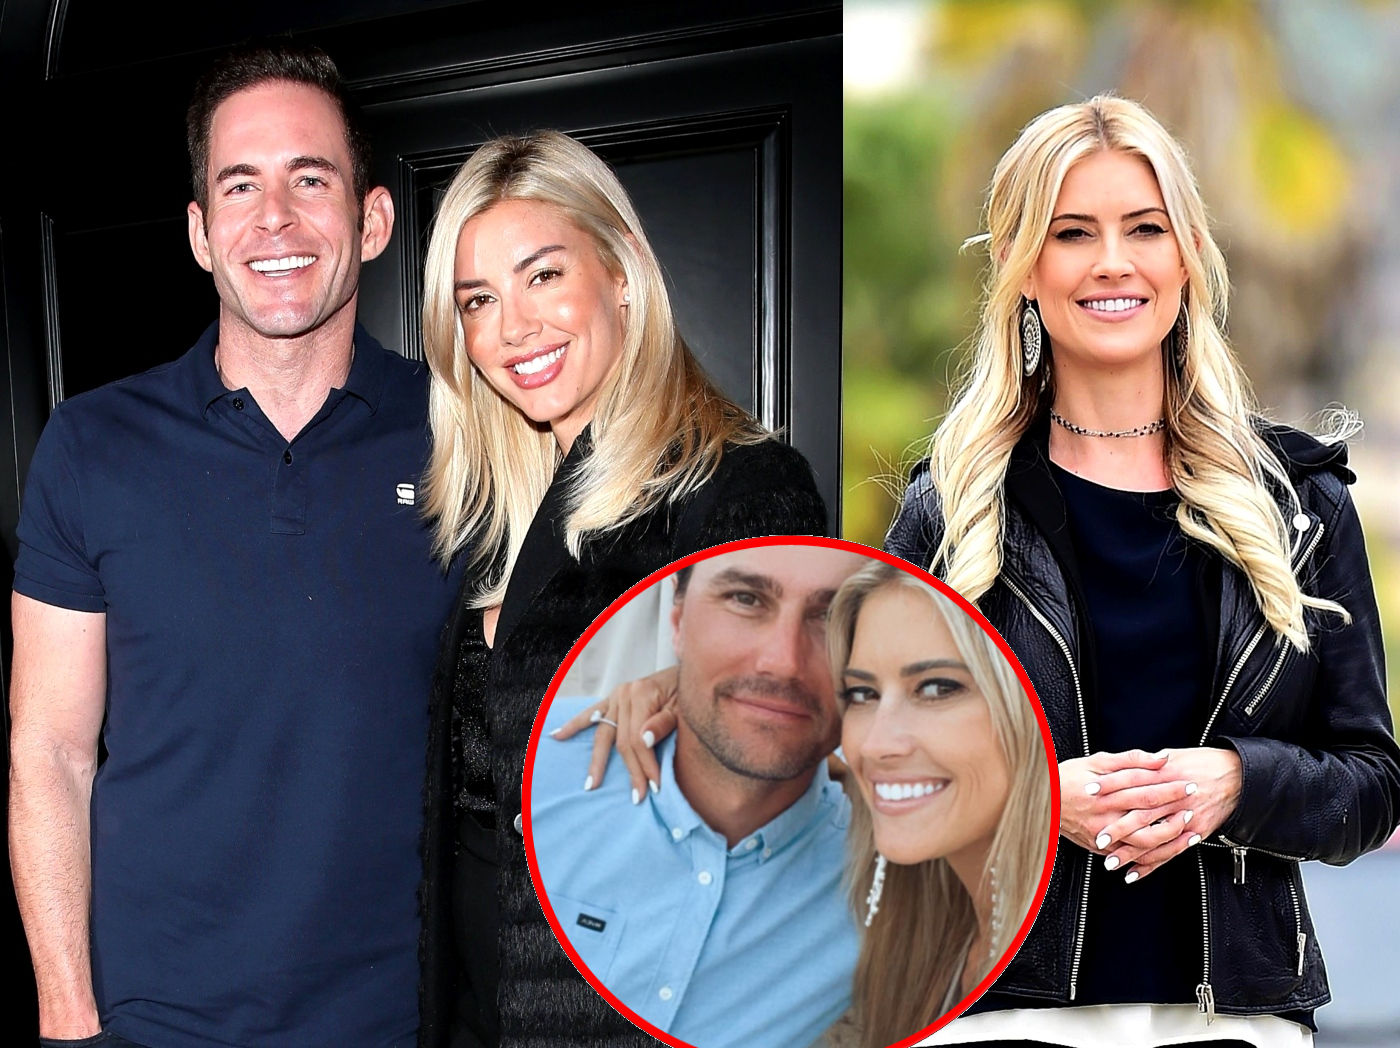 Tarek El Moussa and Heather Rae Young React to Christina's Engagement as Tarek's COVID-19 Diagnosis Forces Shutdowns on Flipping 101 and Selling Sunset